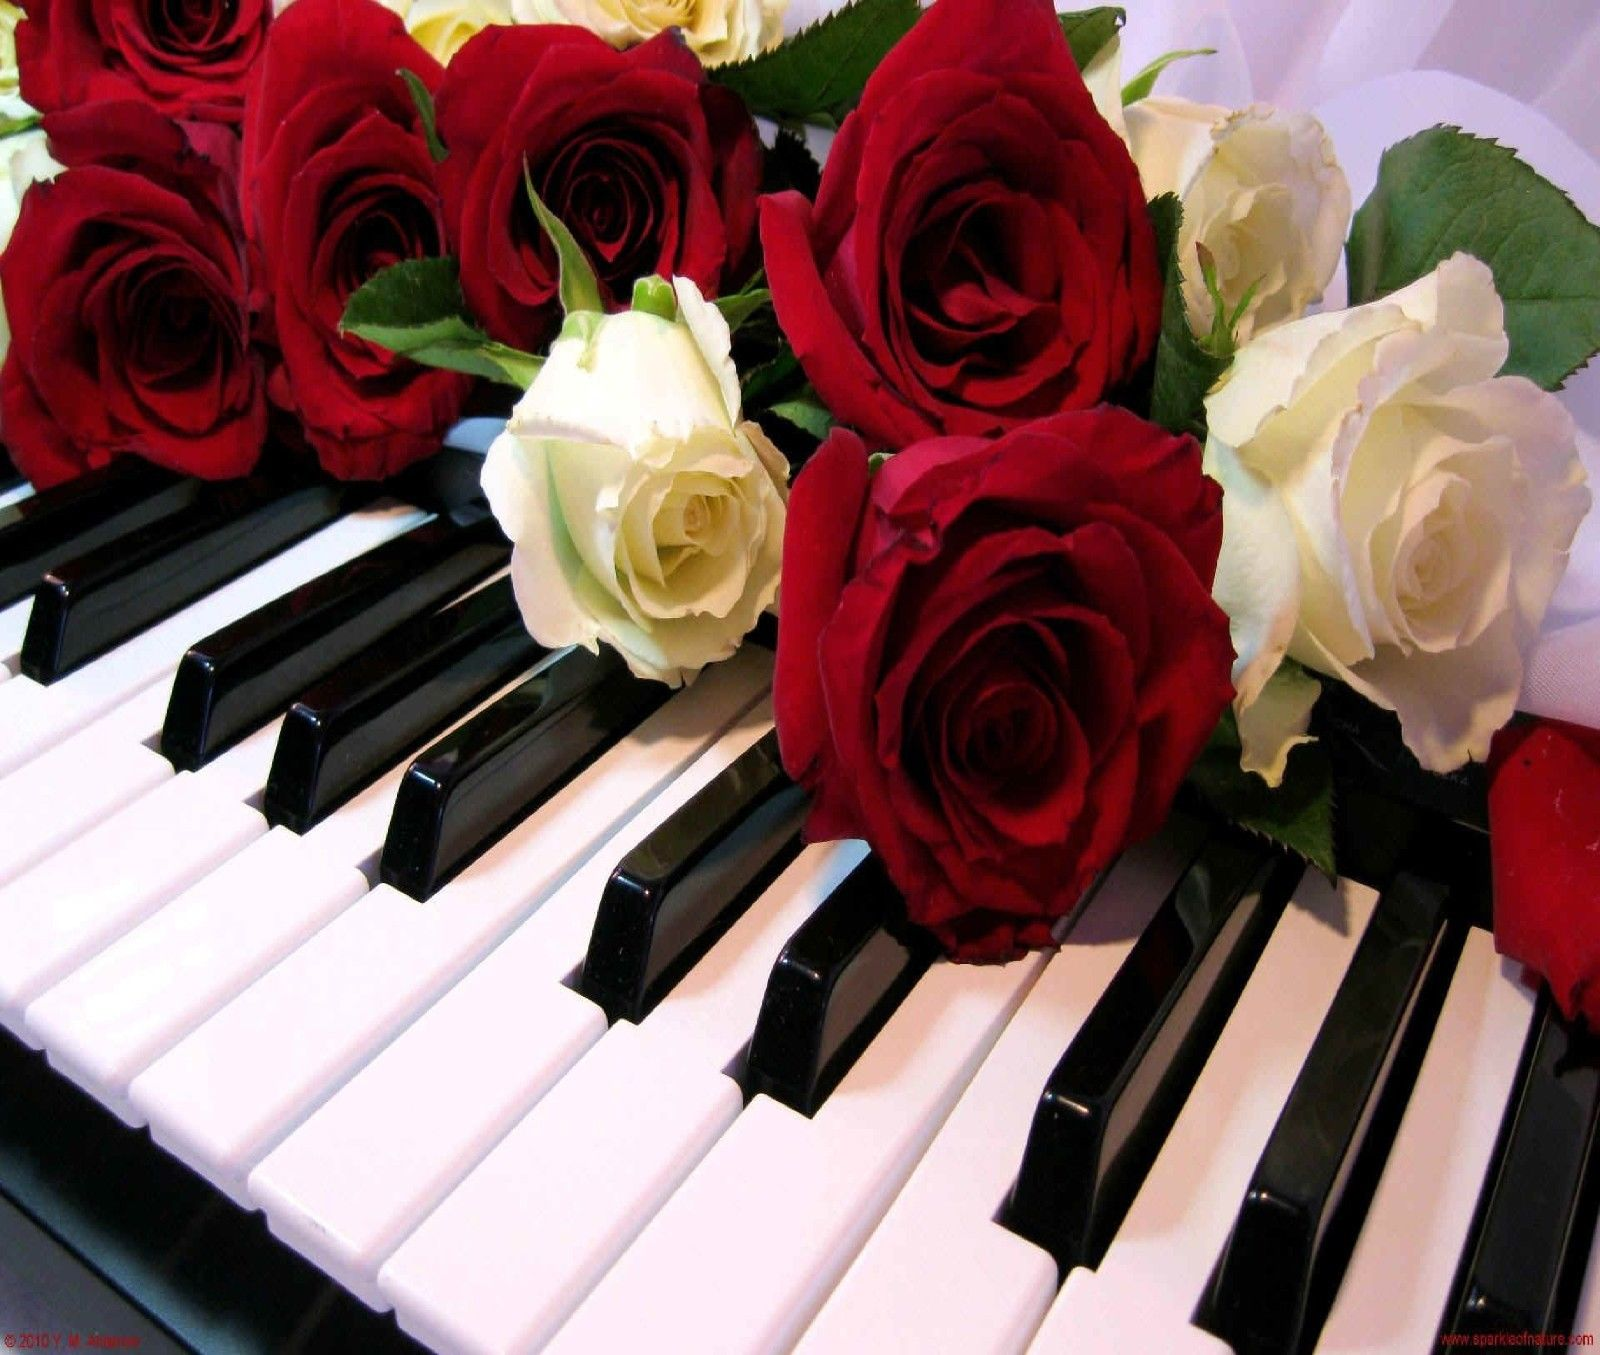 $9.49 - Piano Keys Red And White Roses Computer Mouse Pad ...